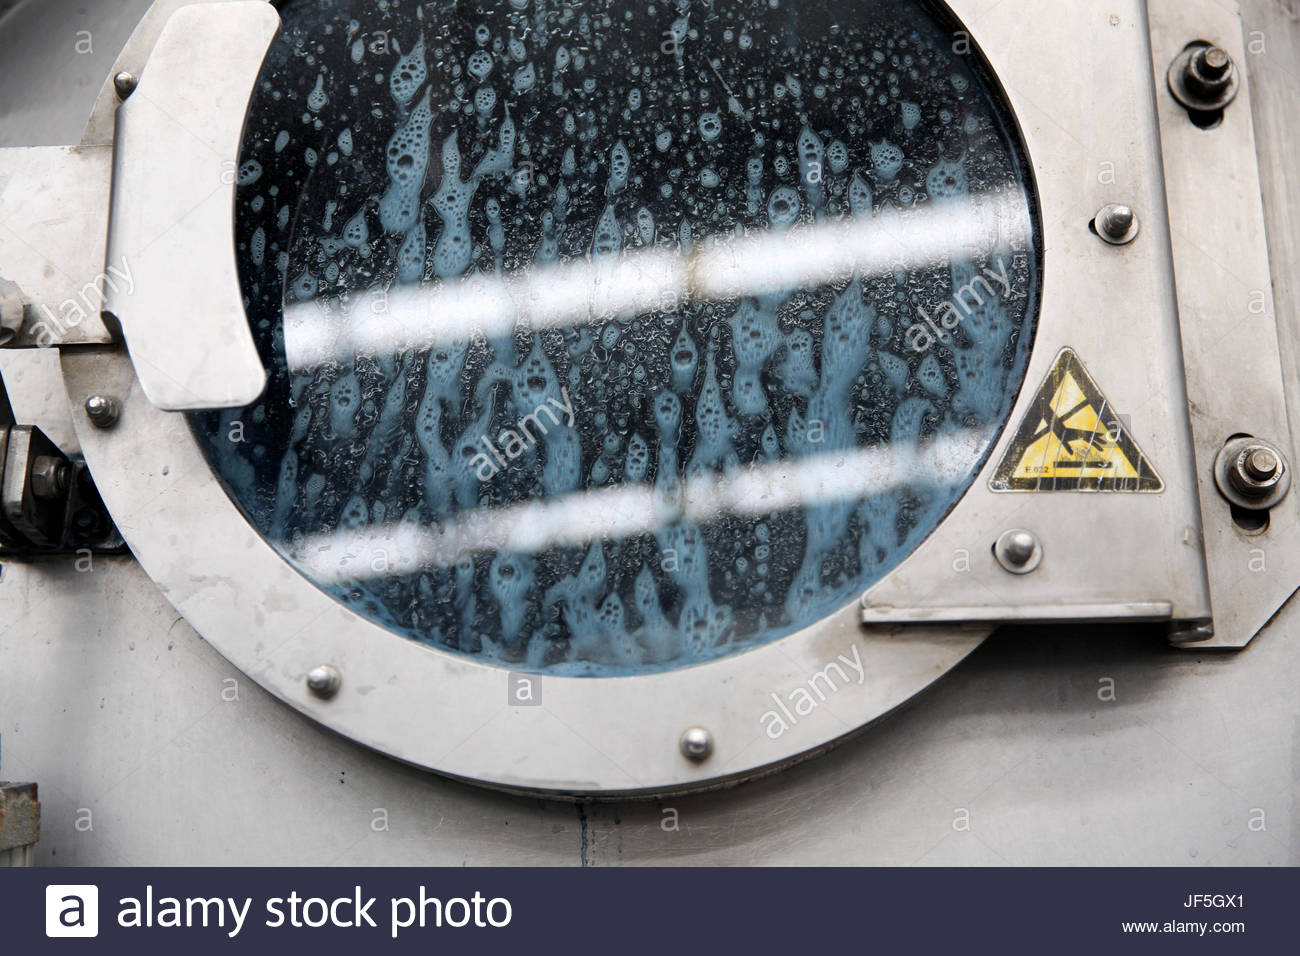 Jeans being washed in large washing machines at a modern denim factory. - Stock Image